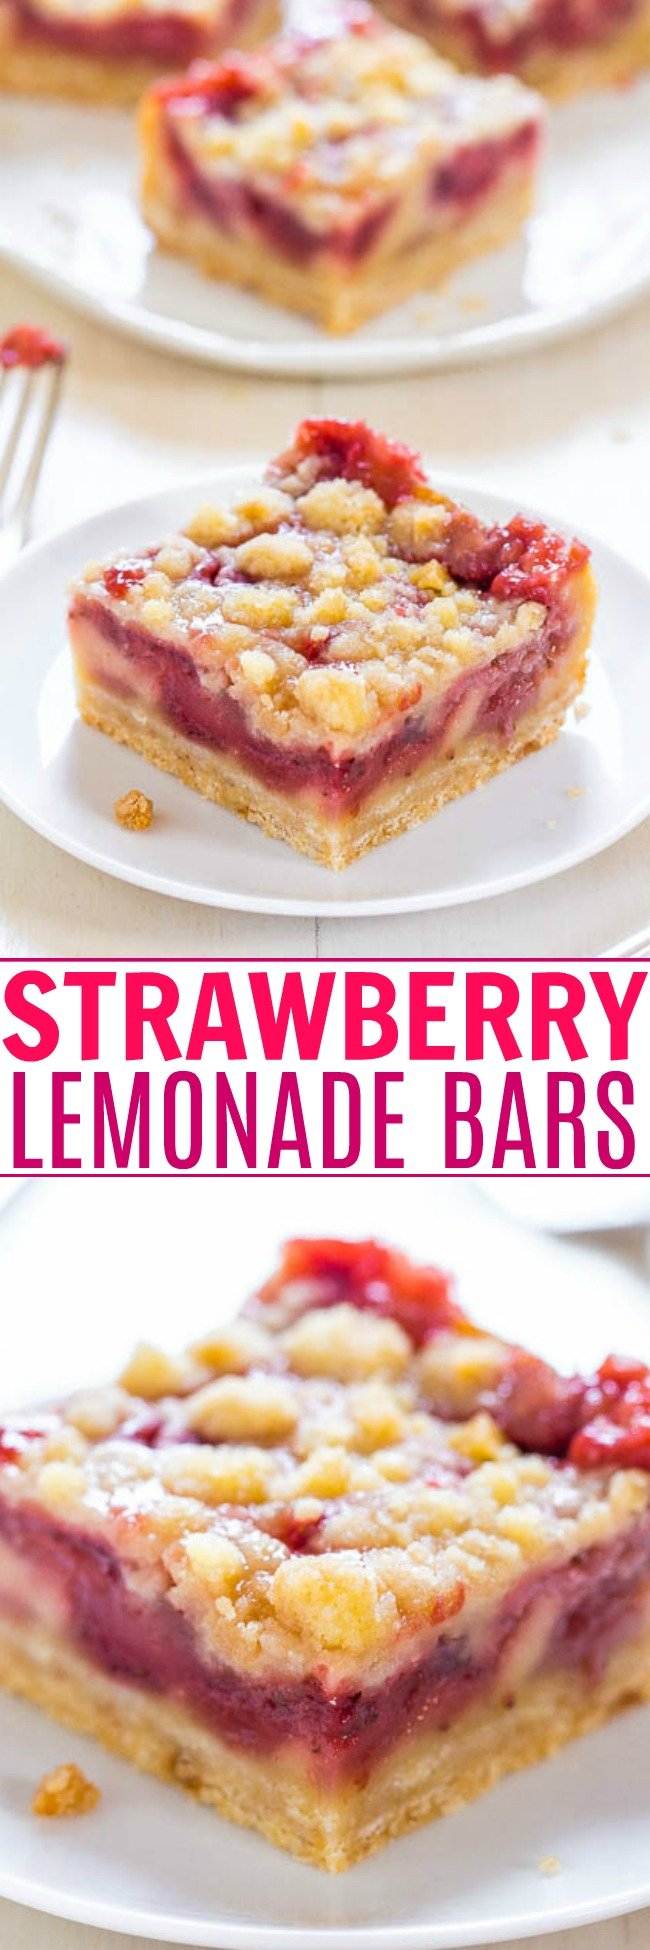 Lemon Strawberry Bars — Imagine crossing lemon bars with a strawberry pie. These easy bars taste like strawberry lemonade! Sooo good!